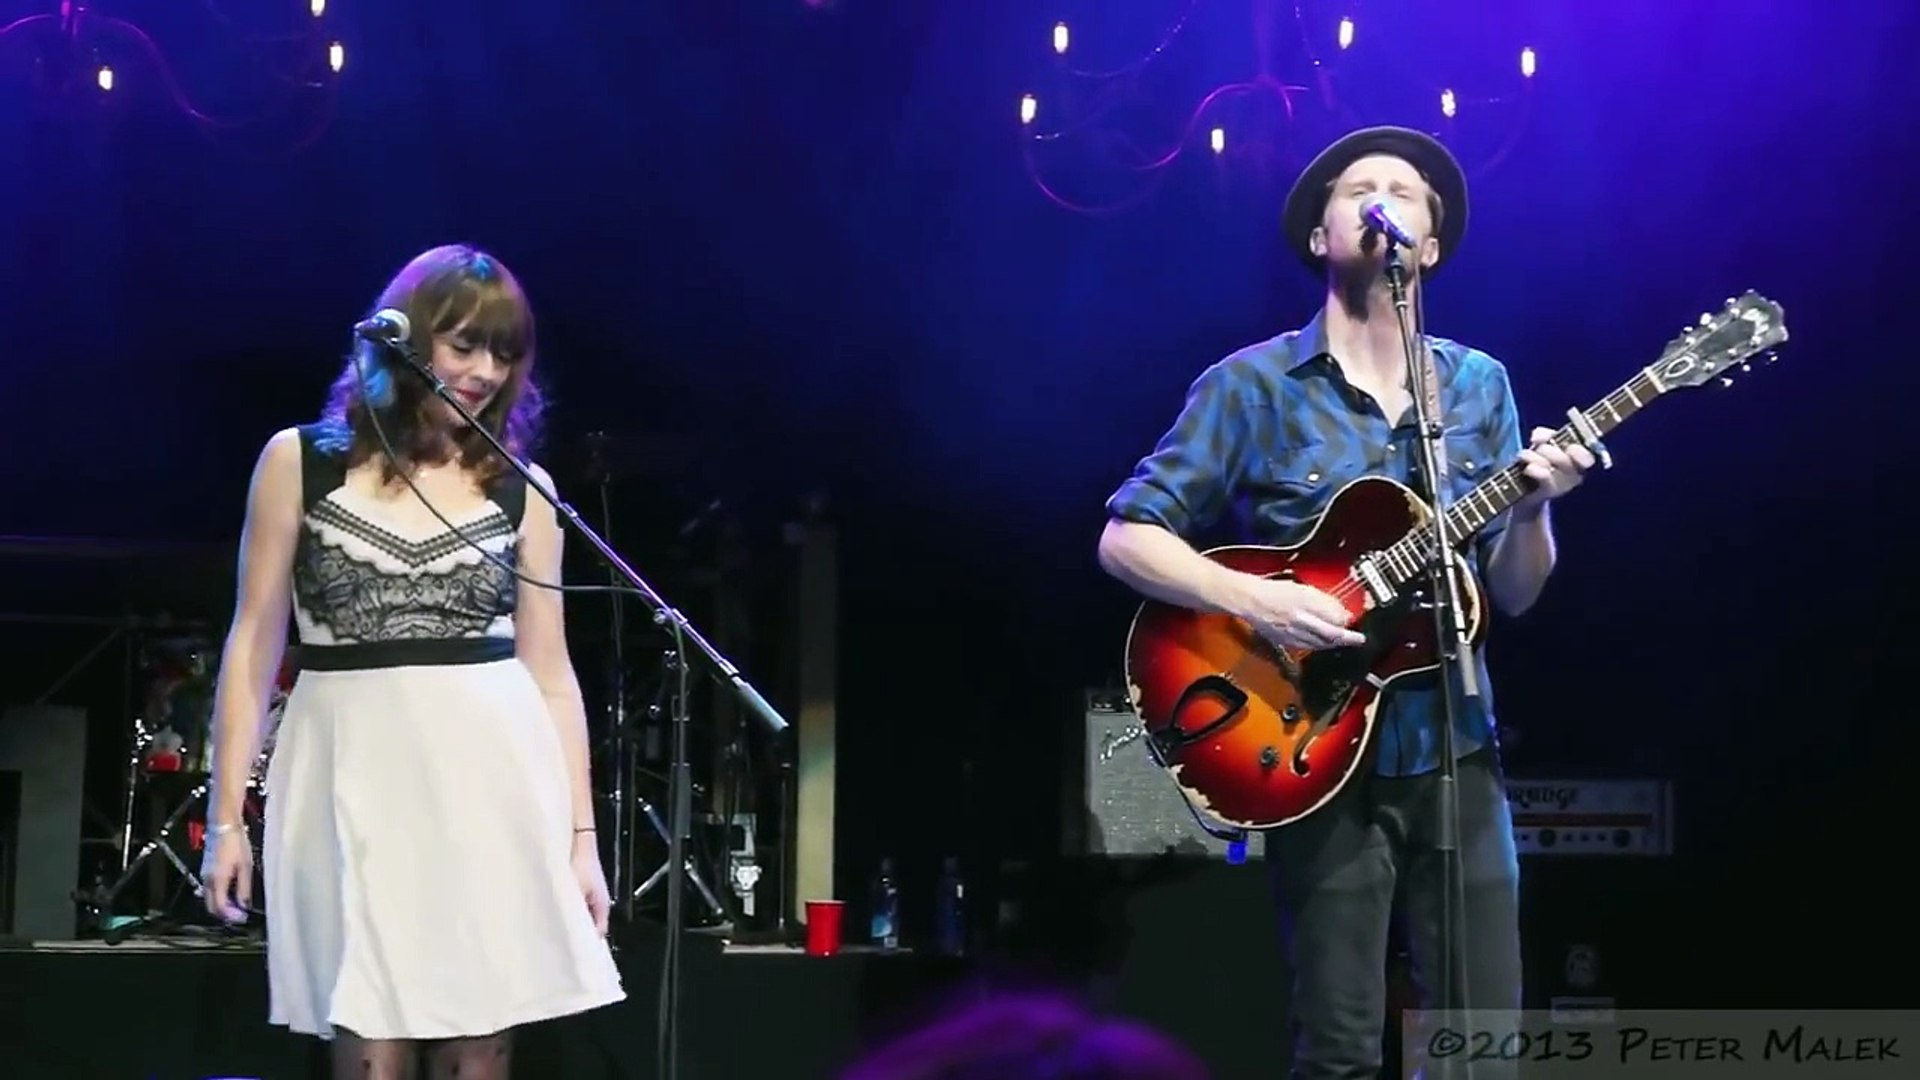 The Lumineers - Falling (New Song) (Live At The Greek - 8-28-13)